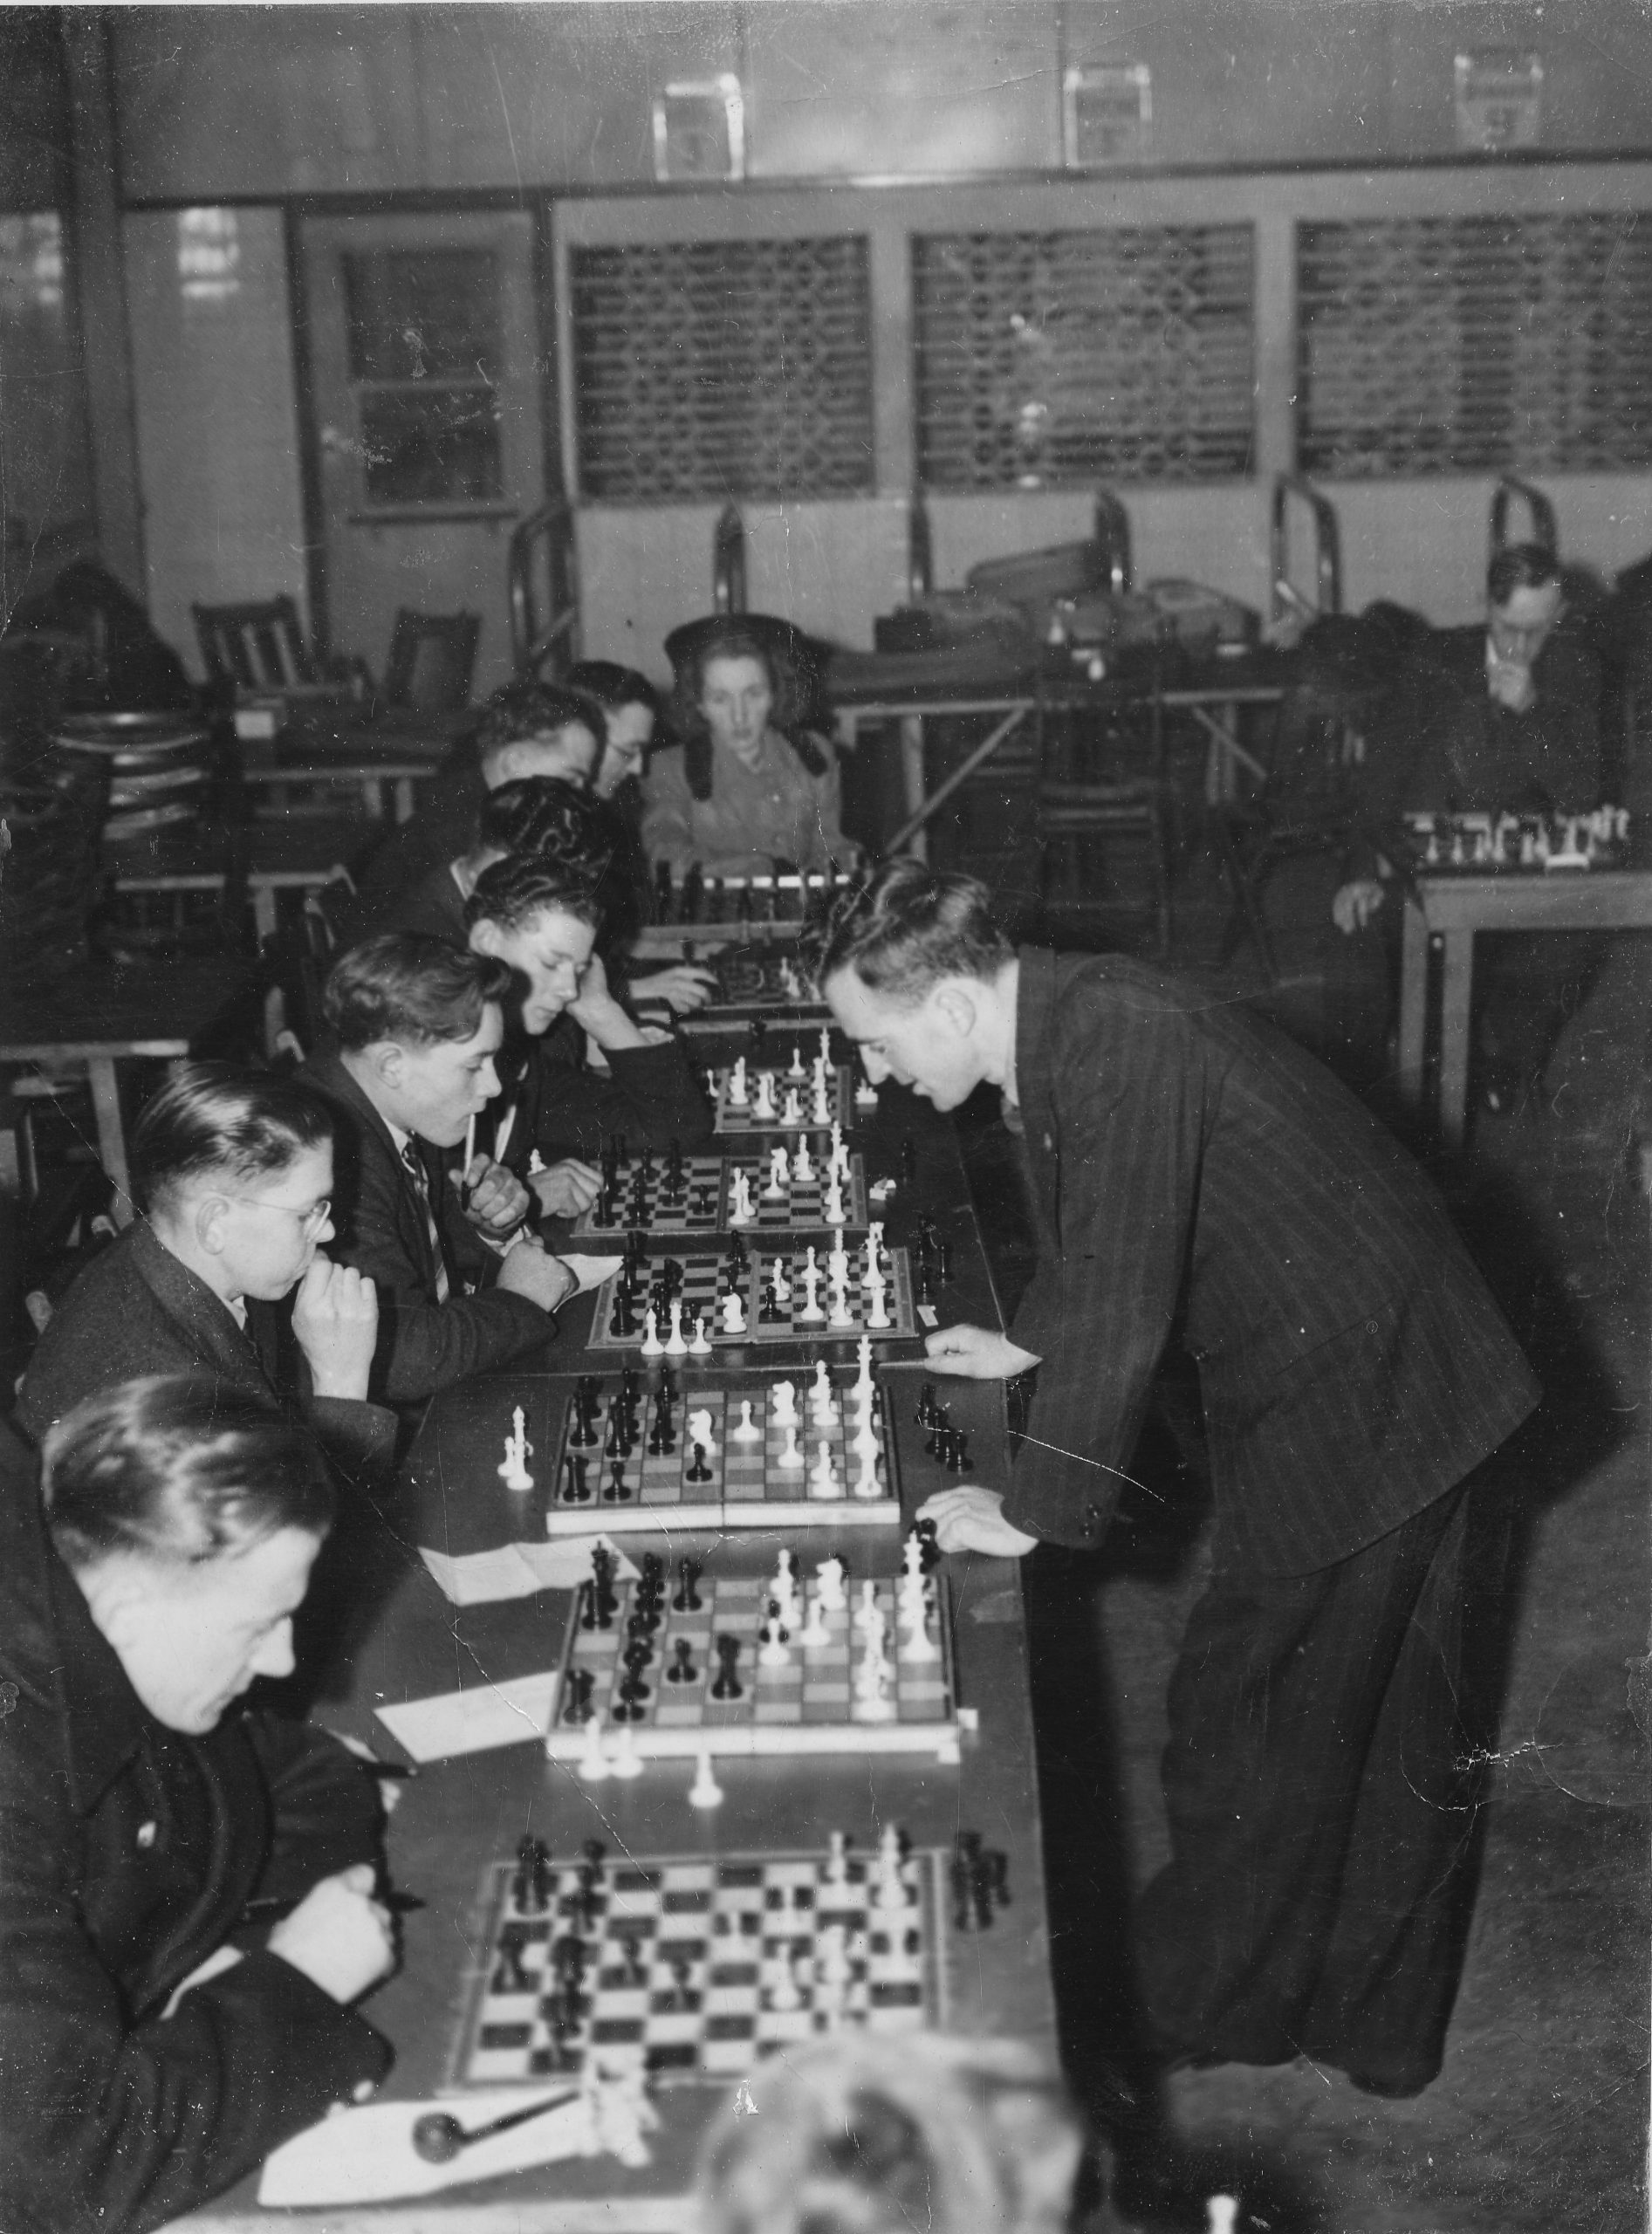 Bob giving a simul in Leeds in the 1950s